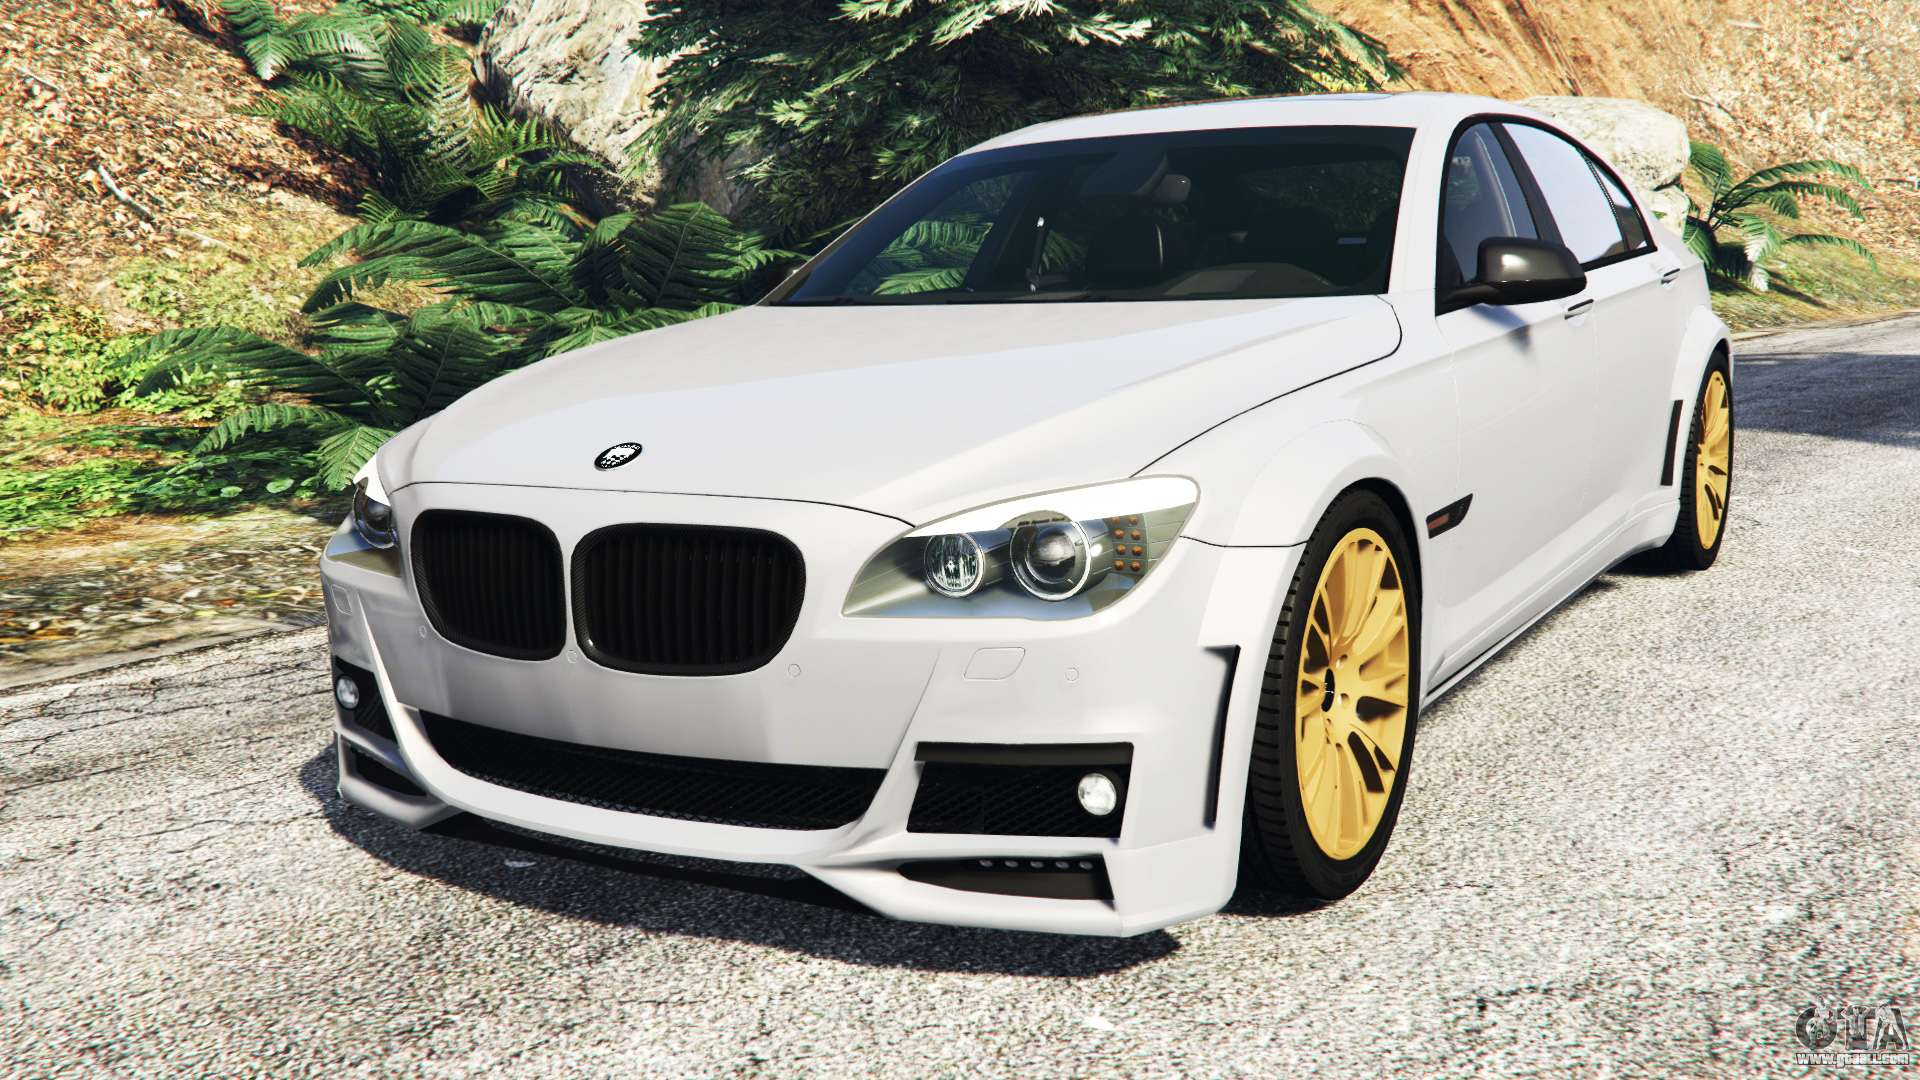 BMW 760Li F02 Lumma CLR 750 Add On For GTA 5